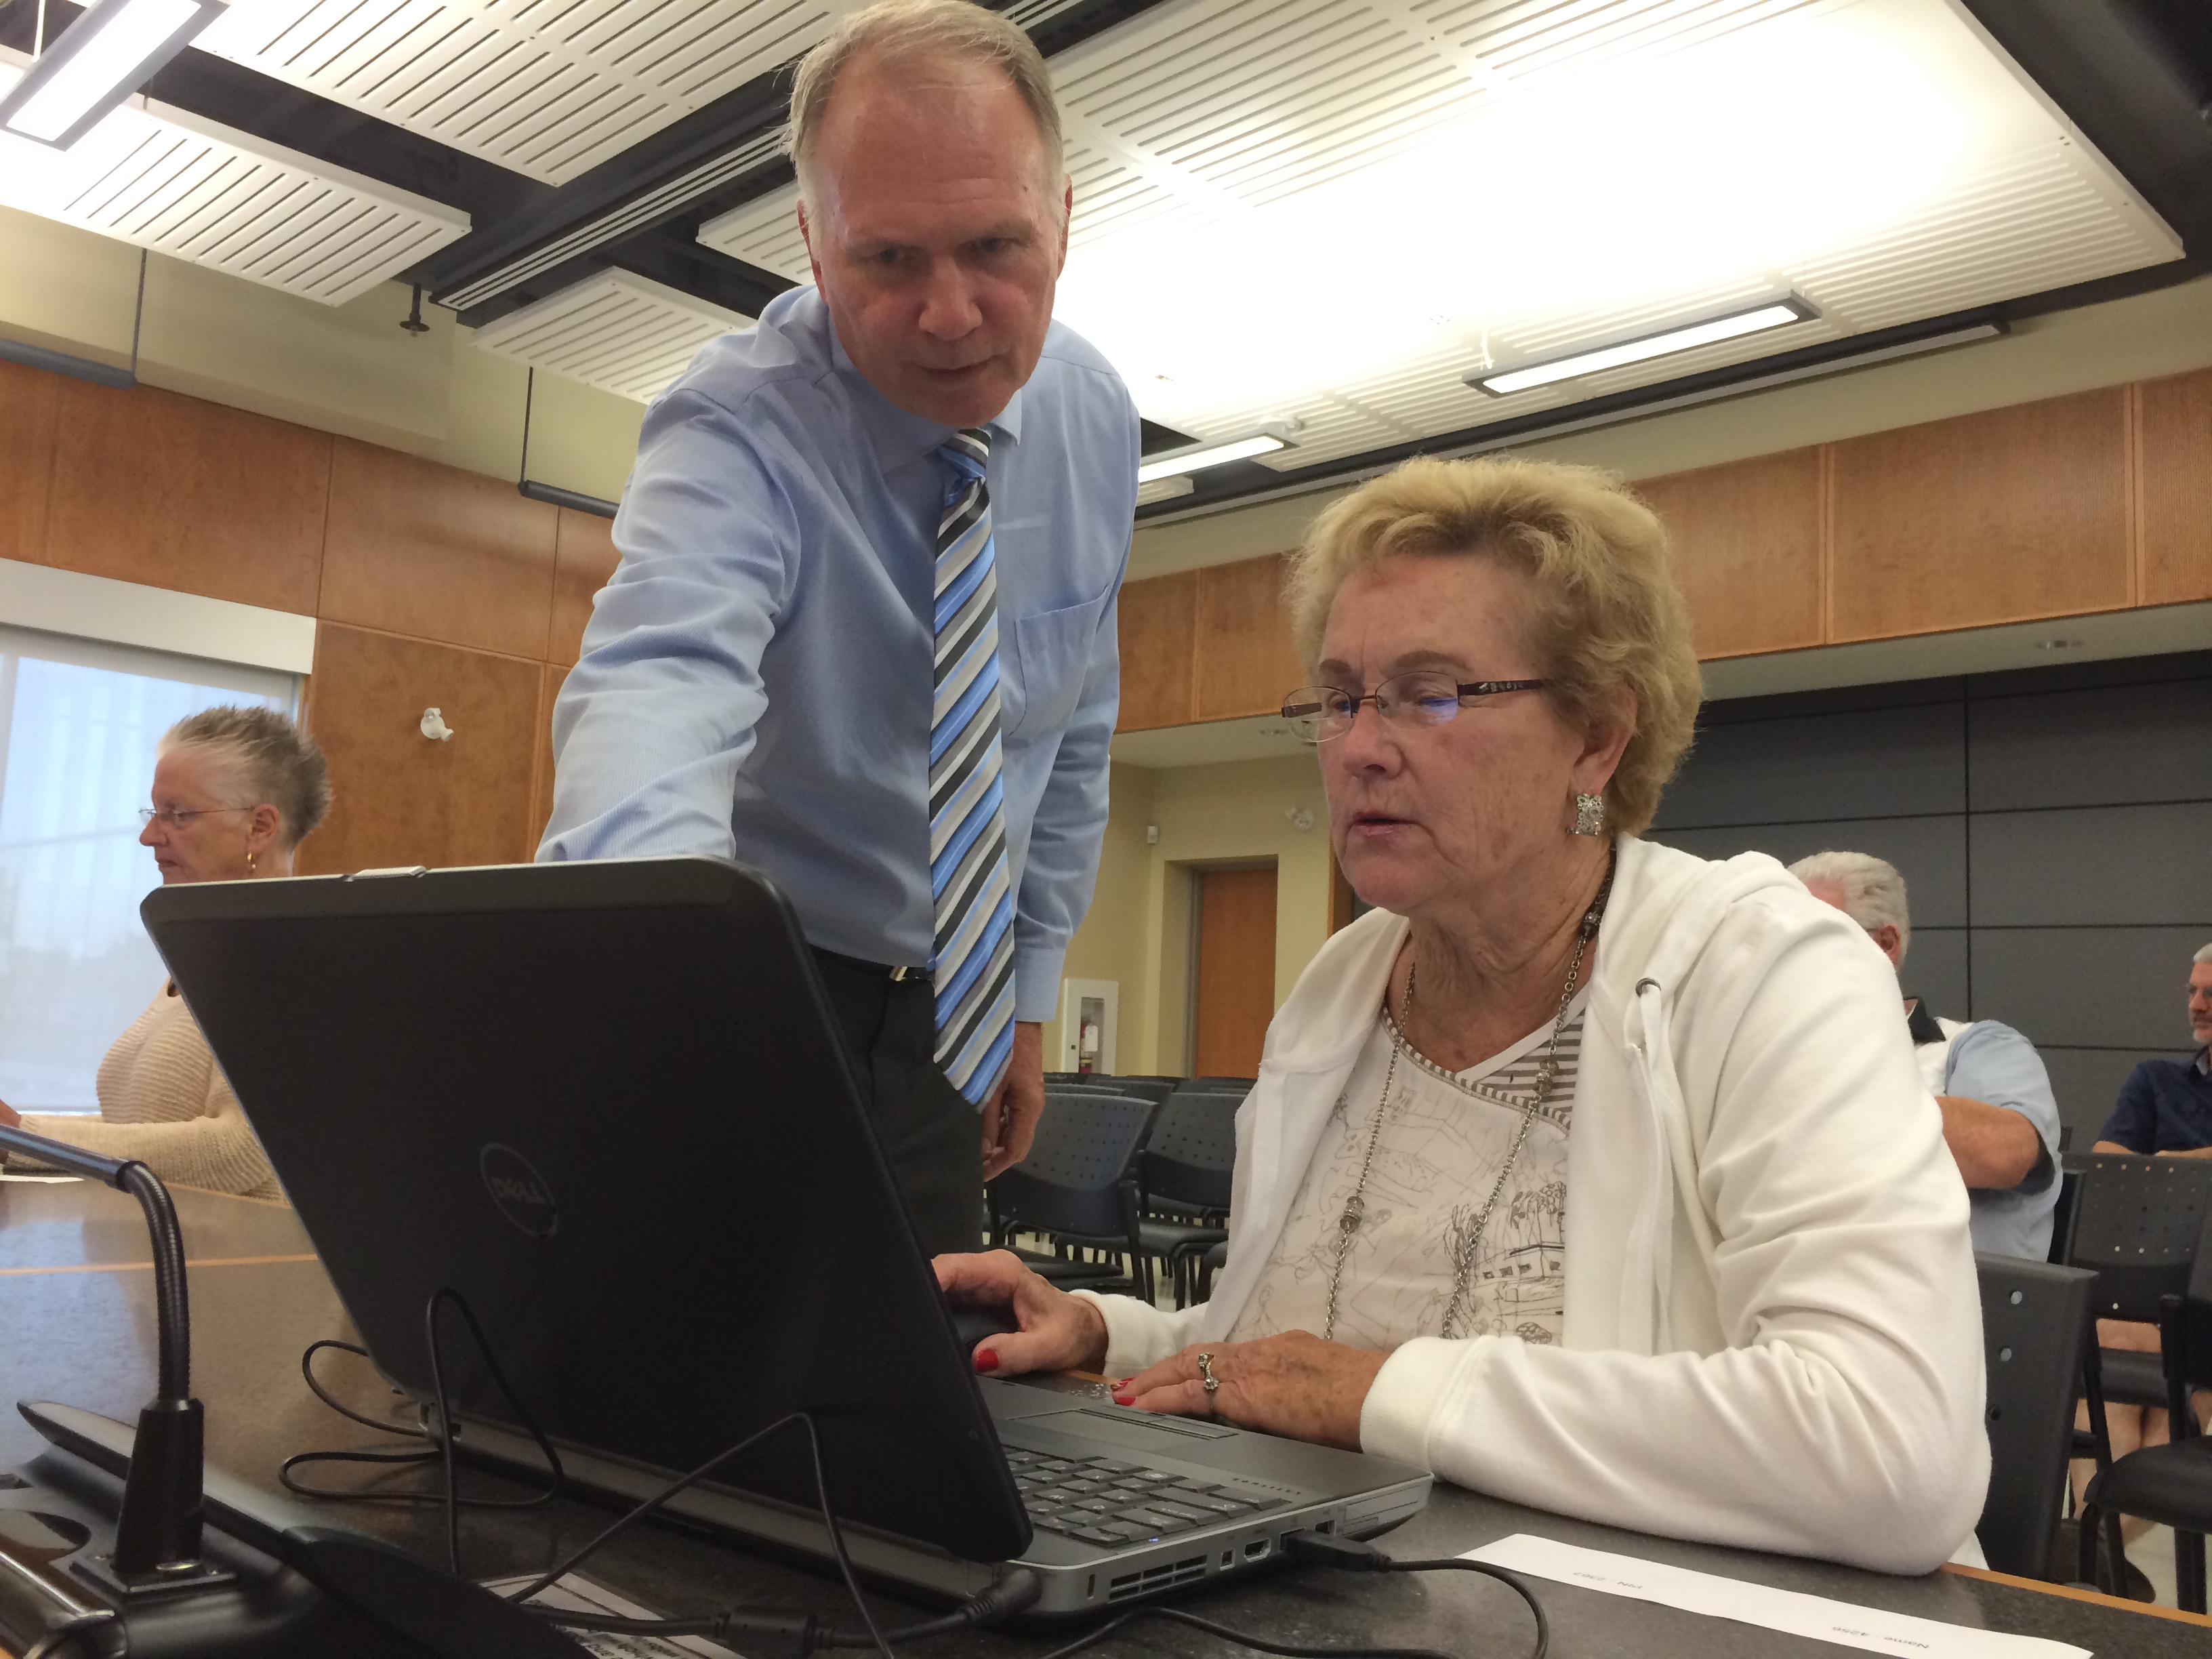 A residents gets some help during a demonstration of the new online voting system Leamington will be using for the 2014 municipal elections. Photo taken August 27, 2014. (Photo by Ricardo Veneza)